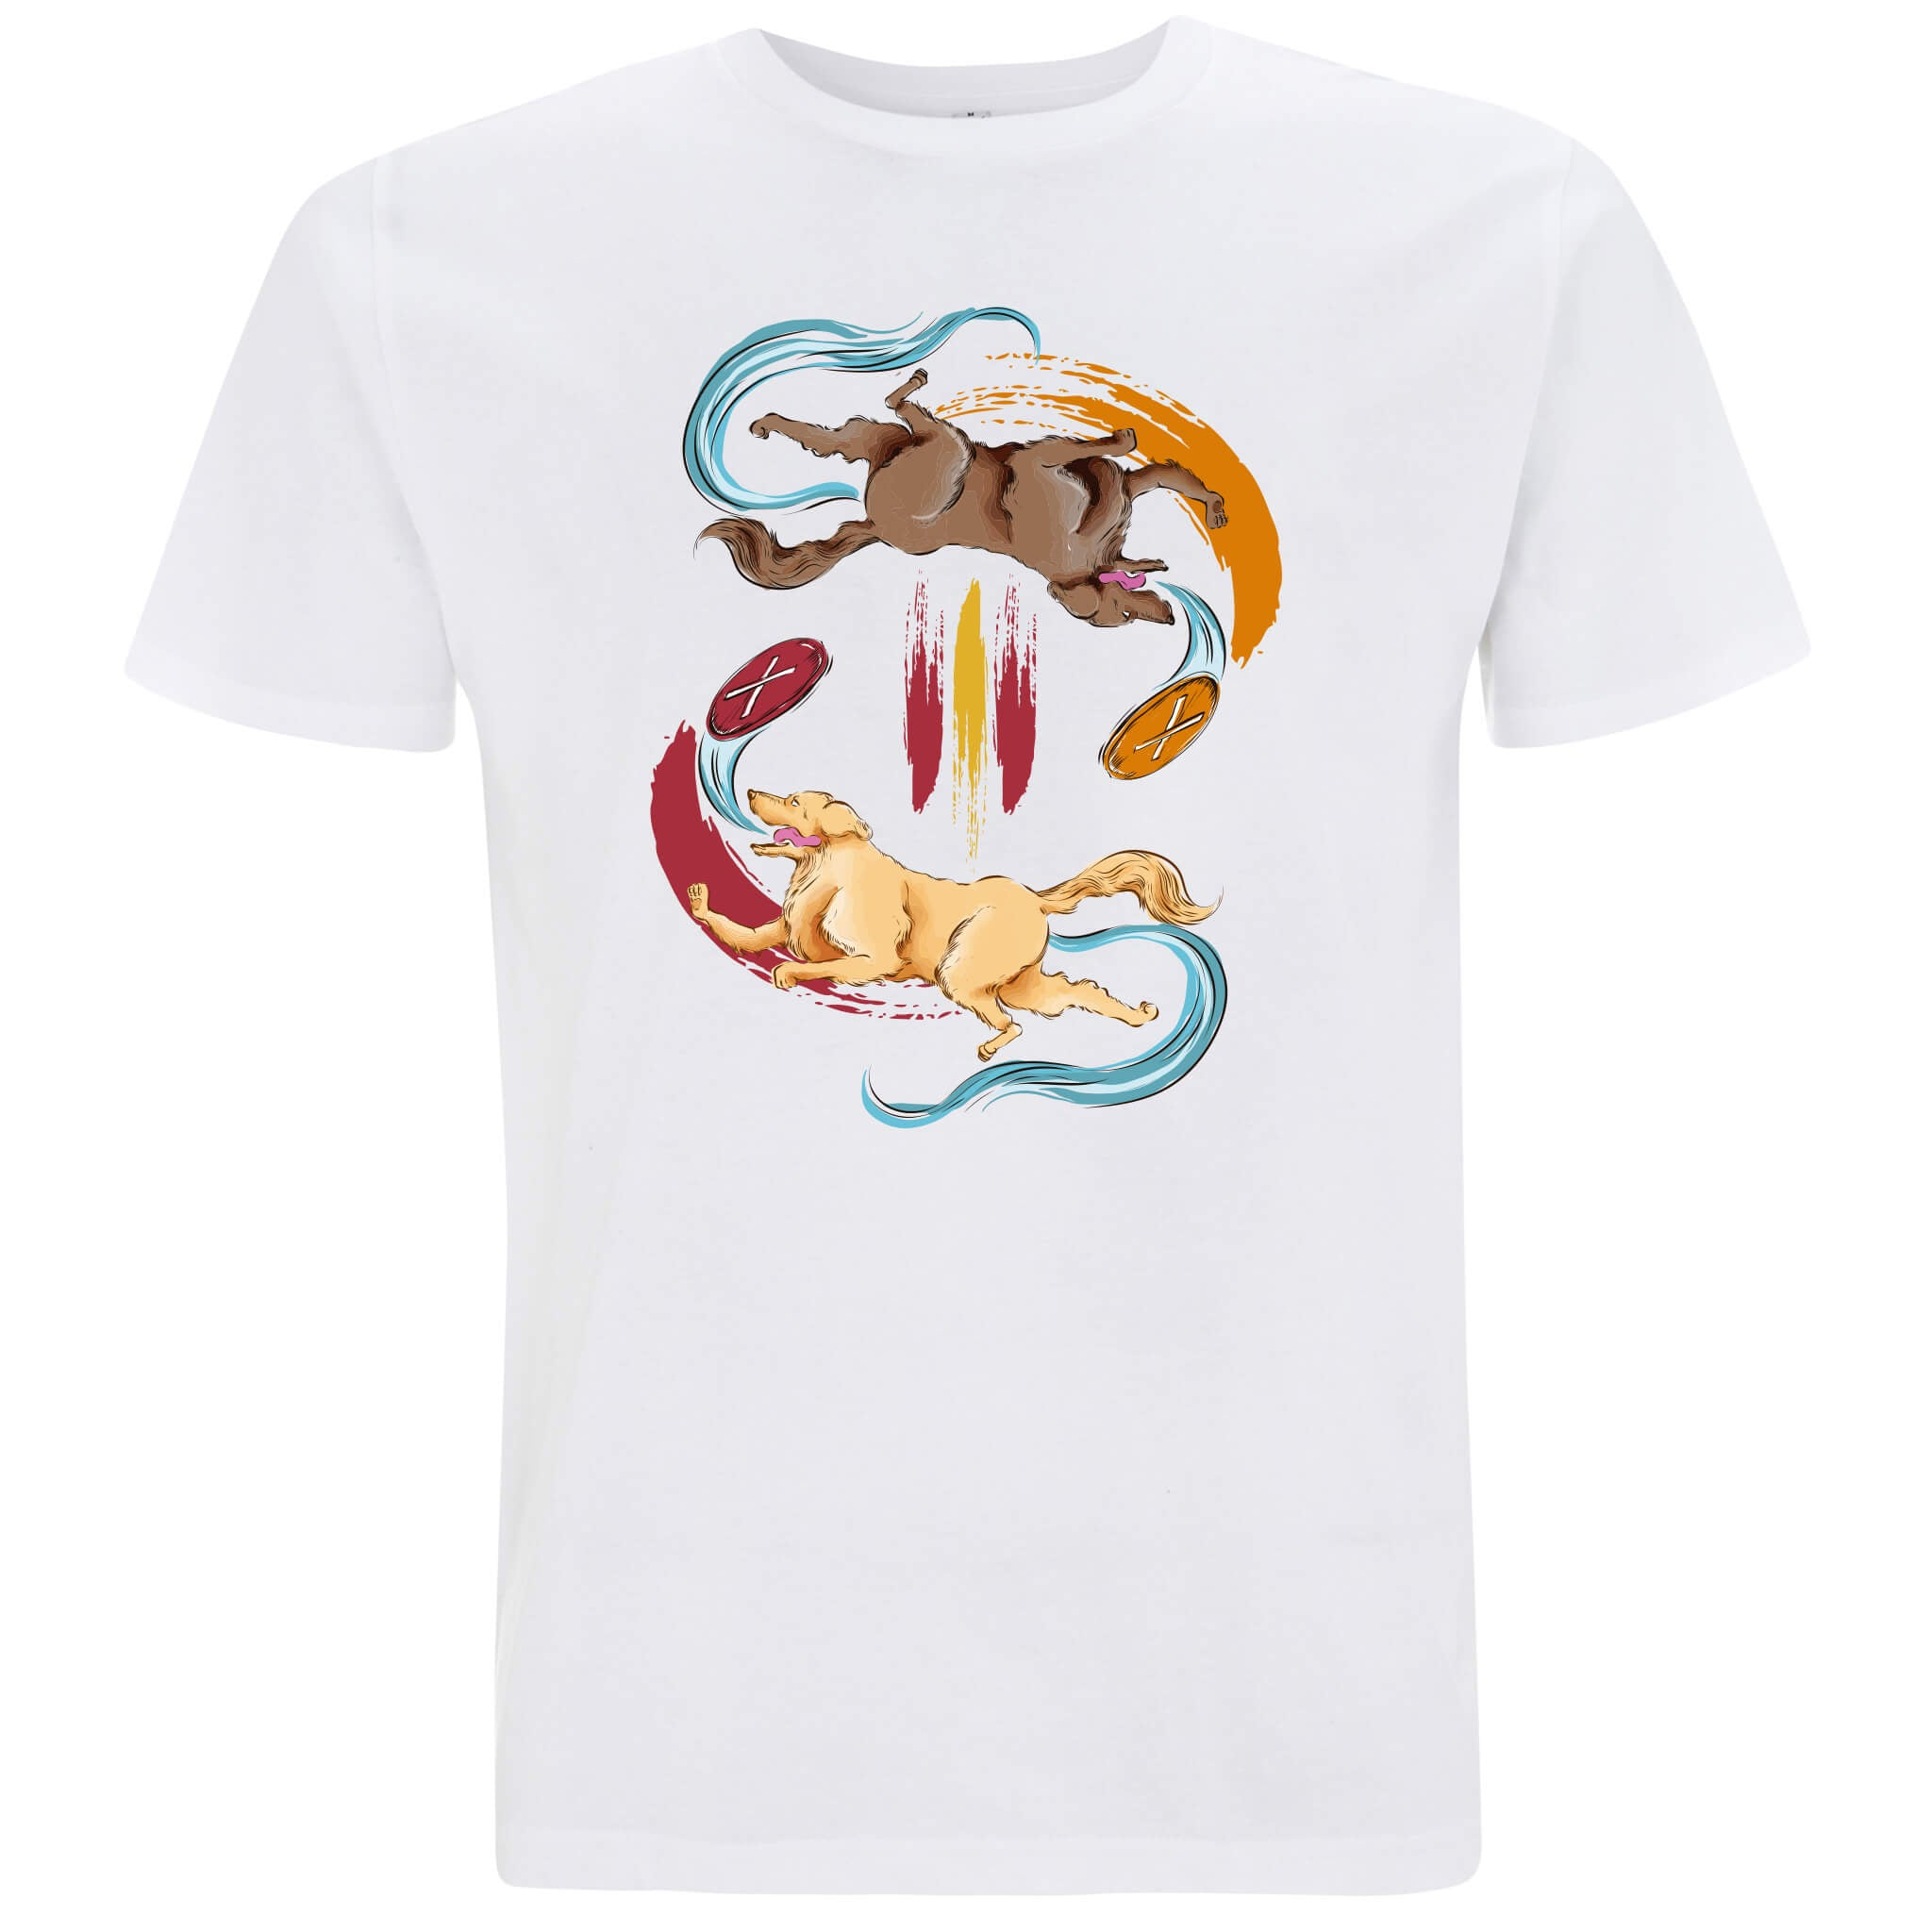 Golden Retriever - T-shirt Uomo - T-Shirt by Fol The Brand